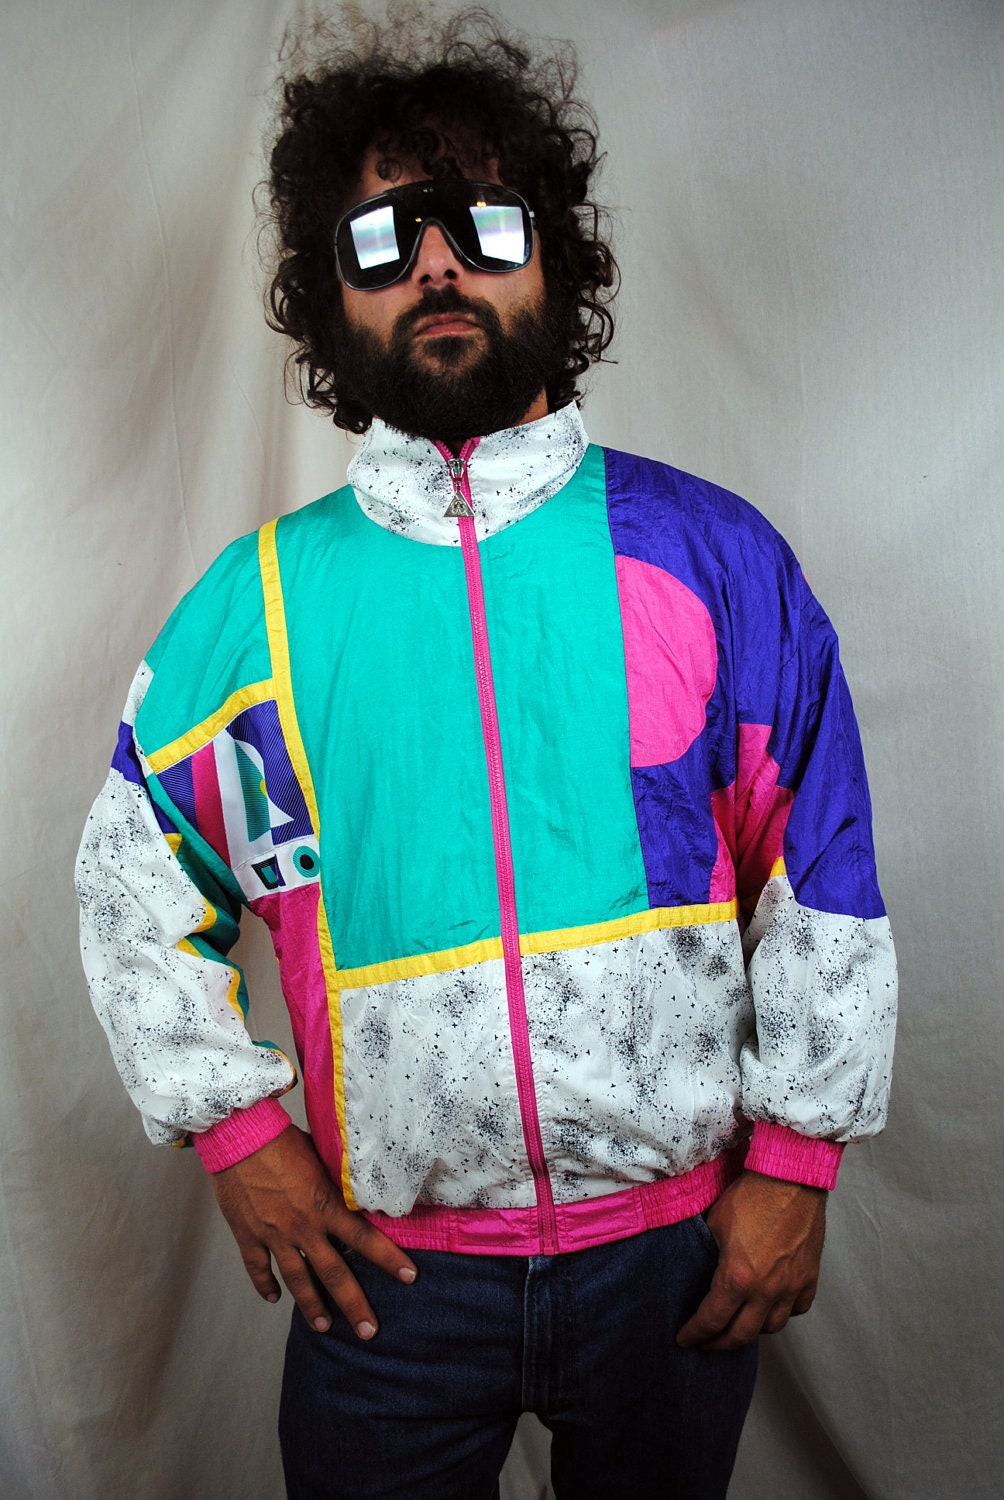 80s Vintage Clothing In The Uk Just Got Easier: Vintage 80s Neon Paint Splatter Jacket Windbreaker